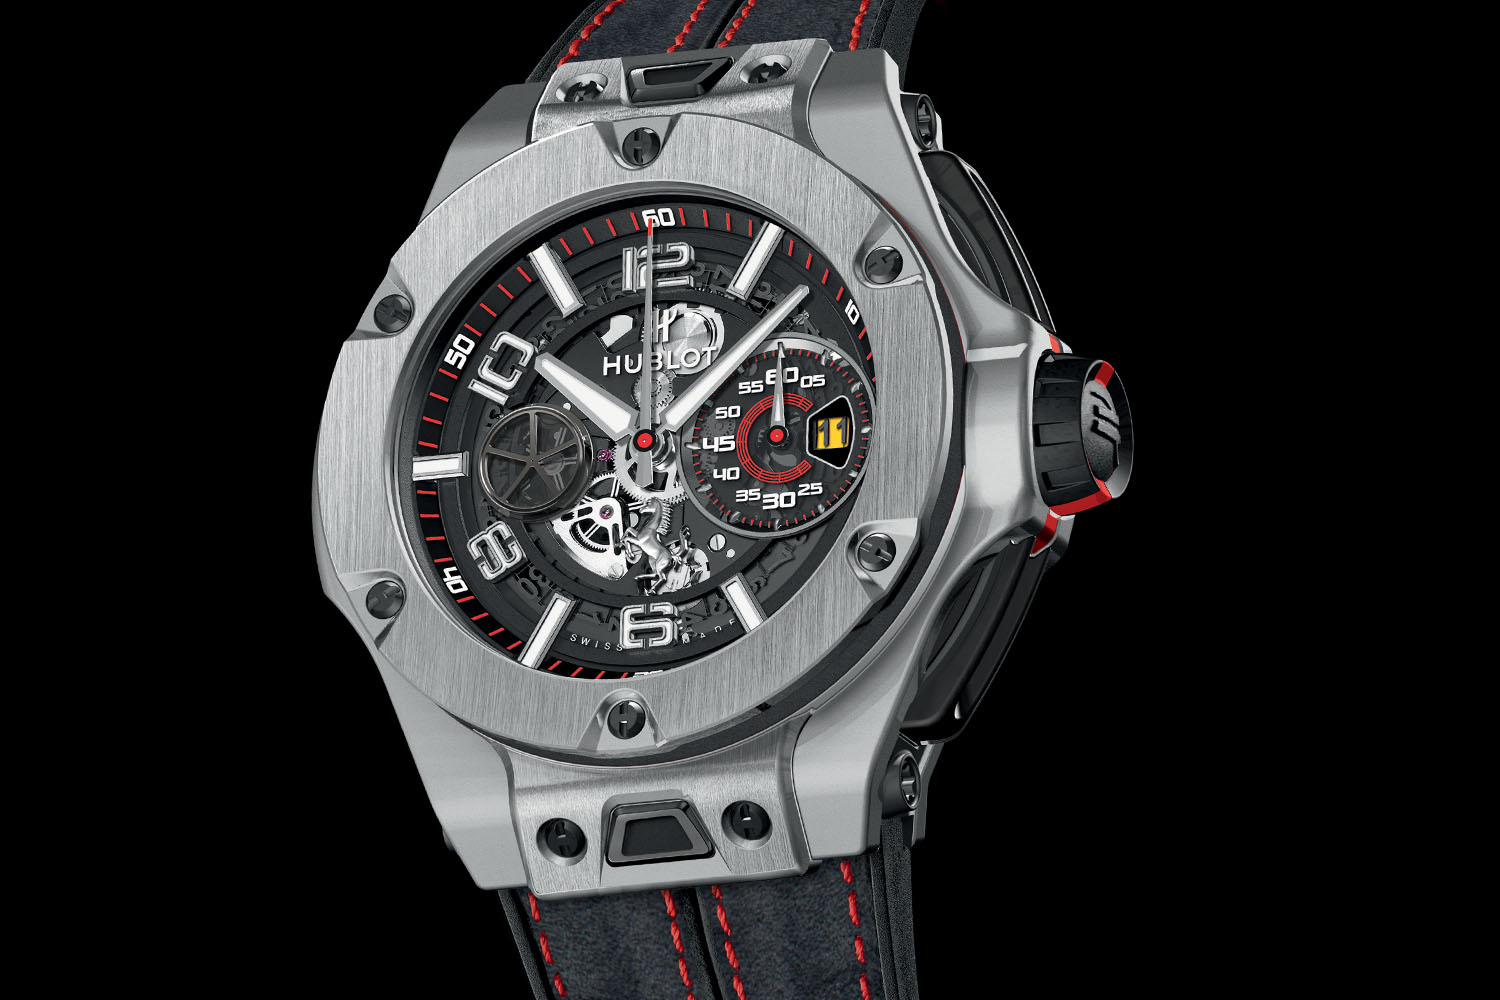 Hublot Big Bang Ferrari Unico Chronograph 2016 Editions